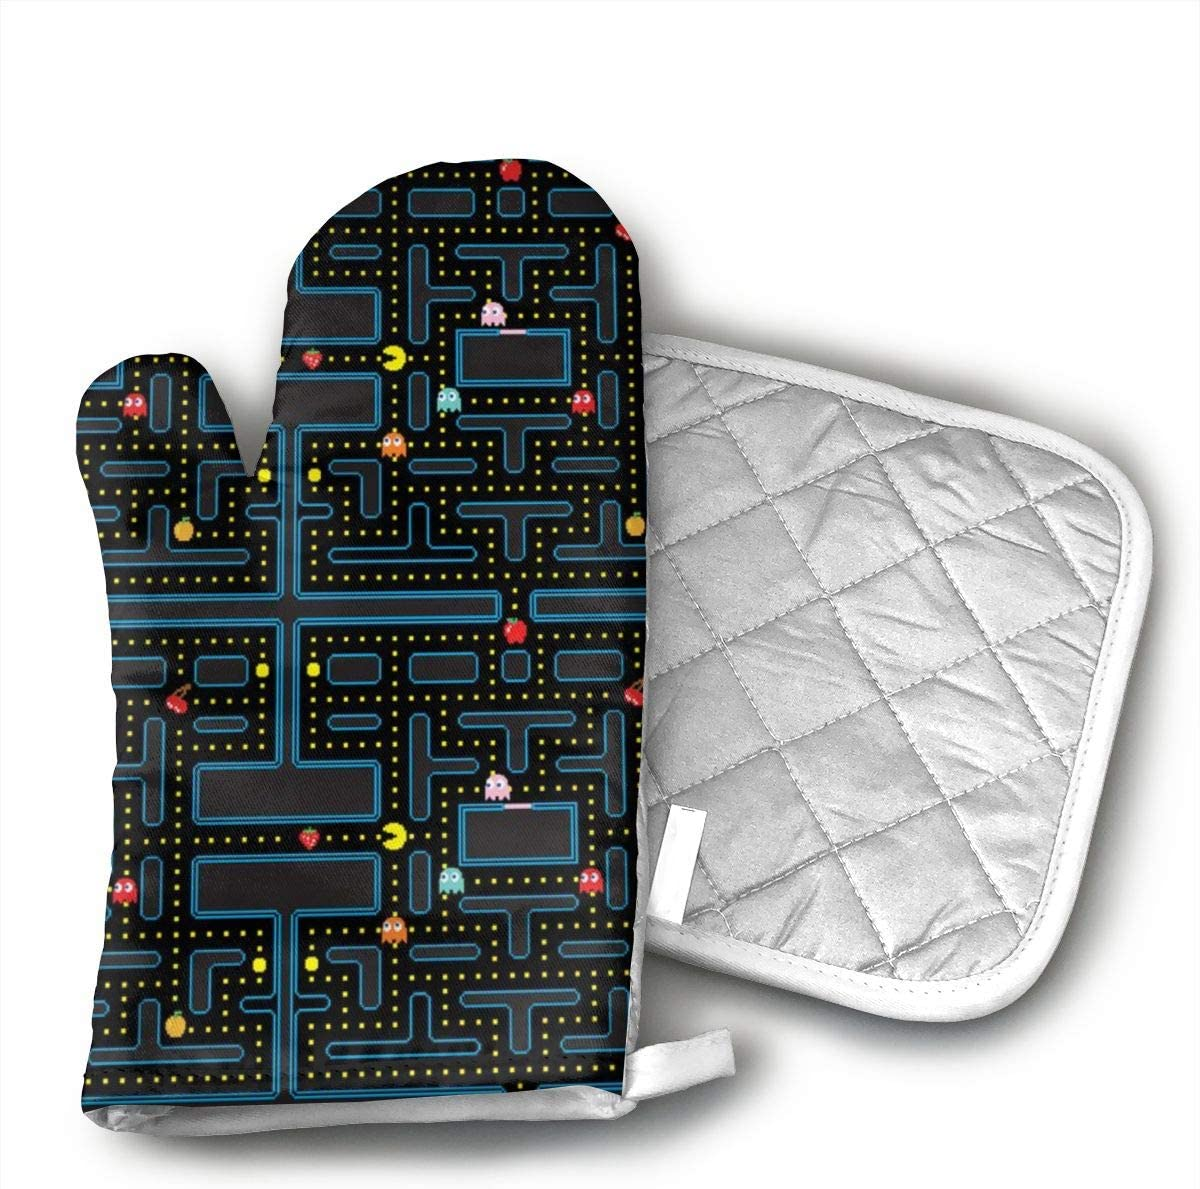 Pacman Retro Video Game Pattern Oven Mitt/Glove Square Potholder, Hot Pads and Cotton Microwave Oven Mitts Heat Resistant